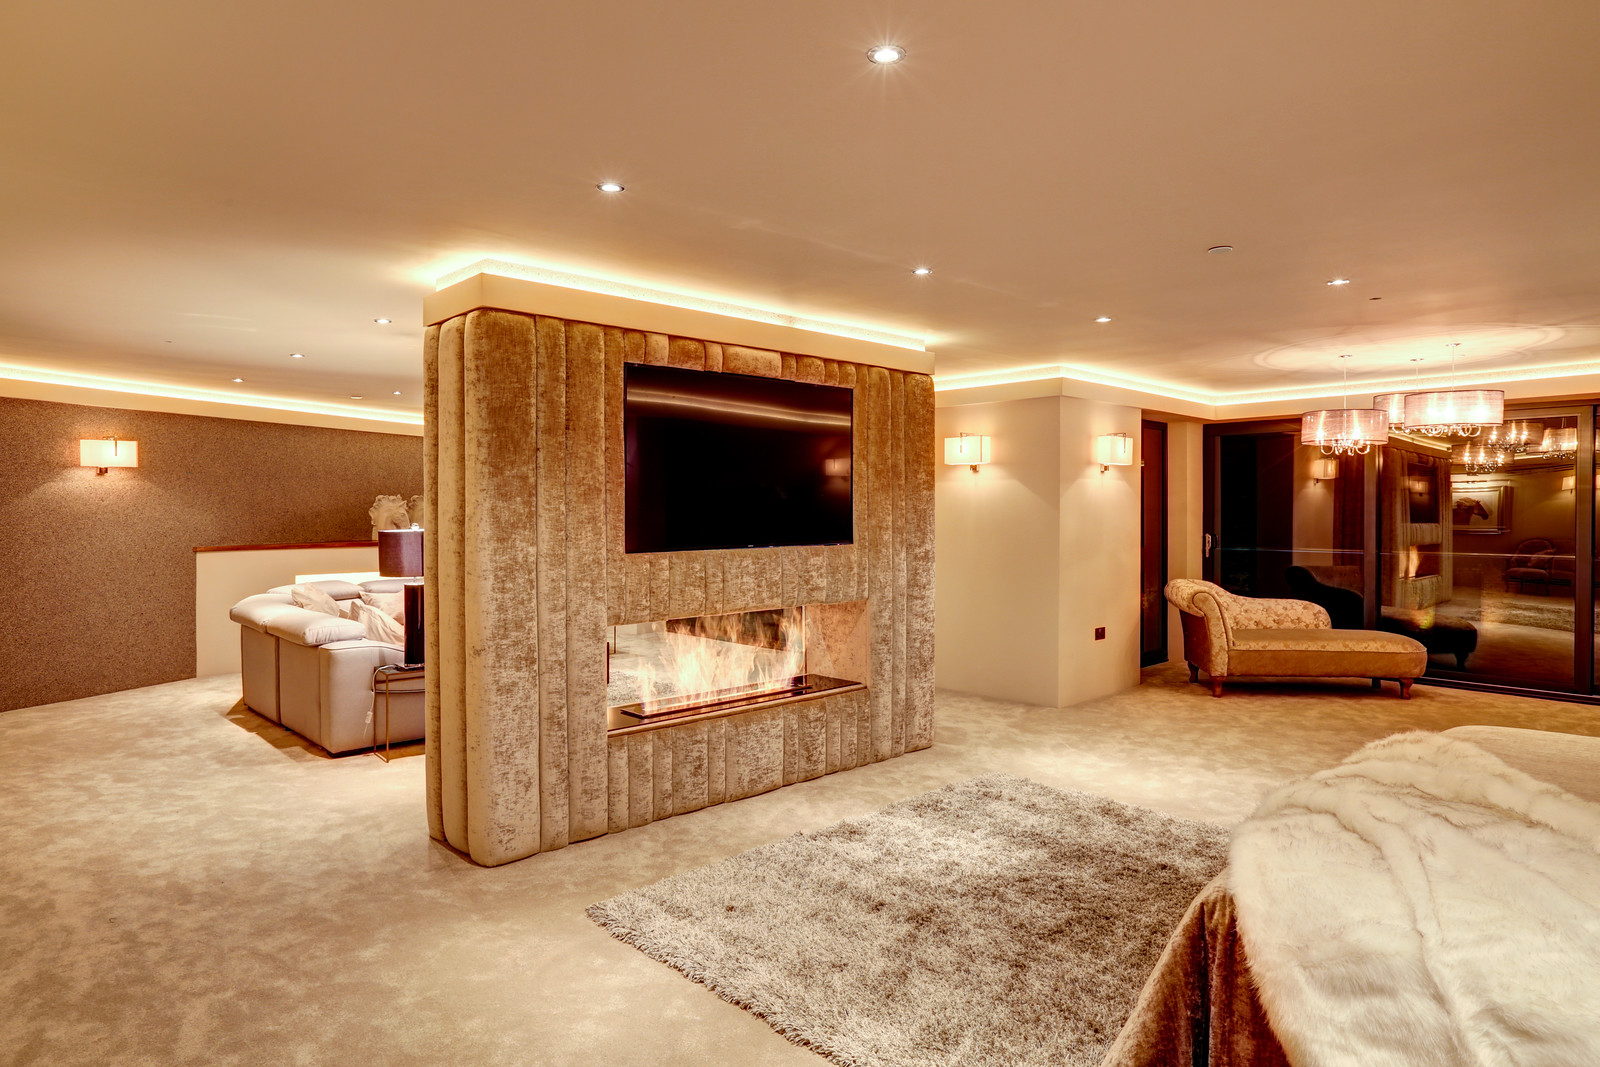 Master Suite, Tanglewood. Luxury home in colston Bassett by Guy Phoenix